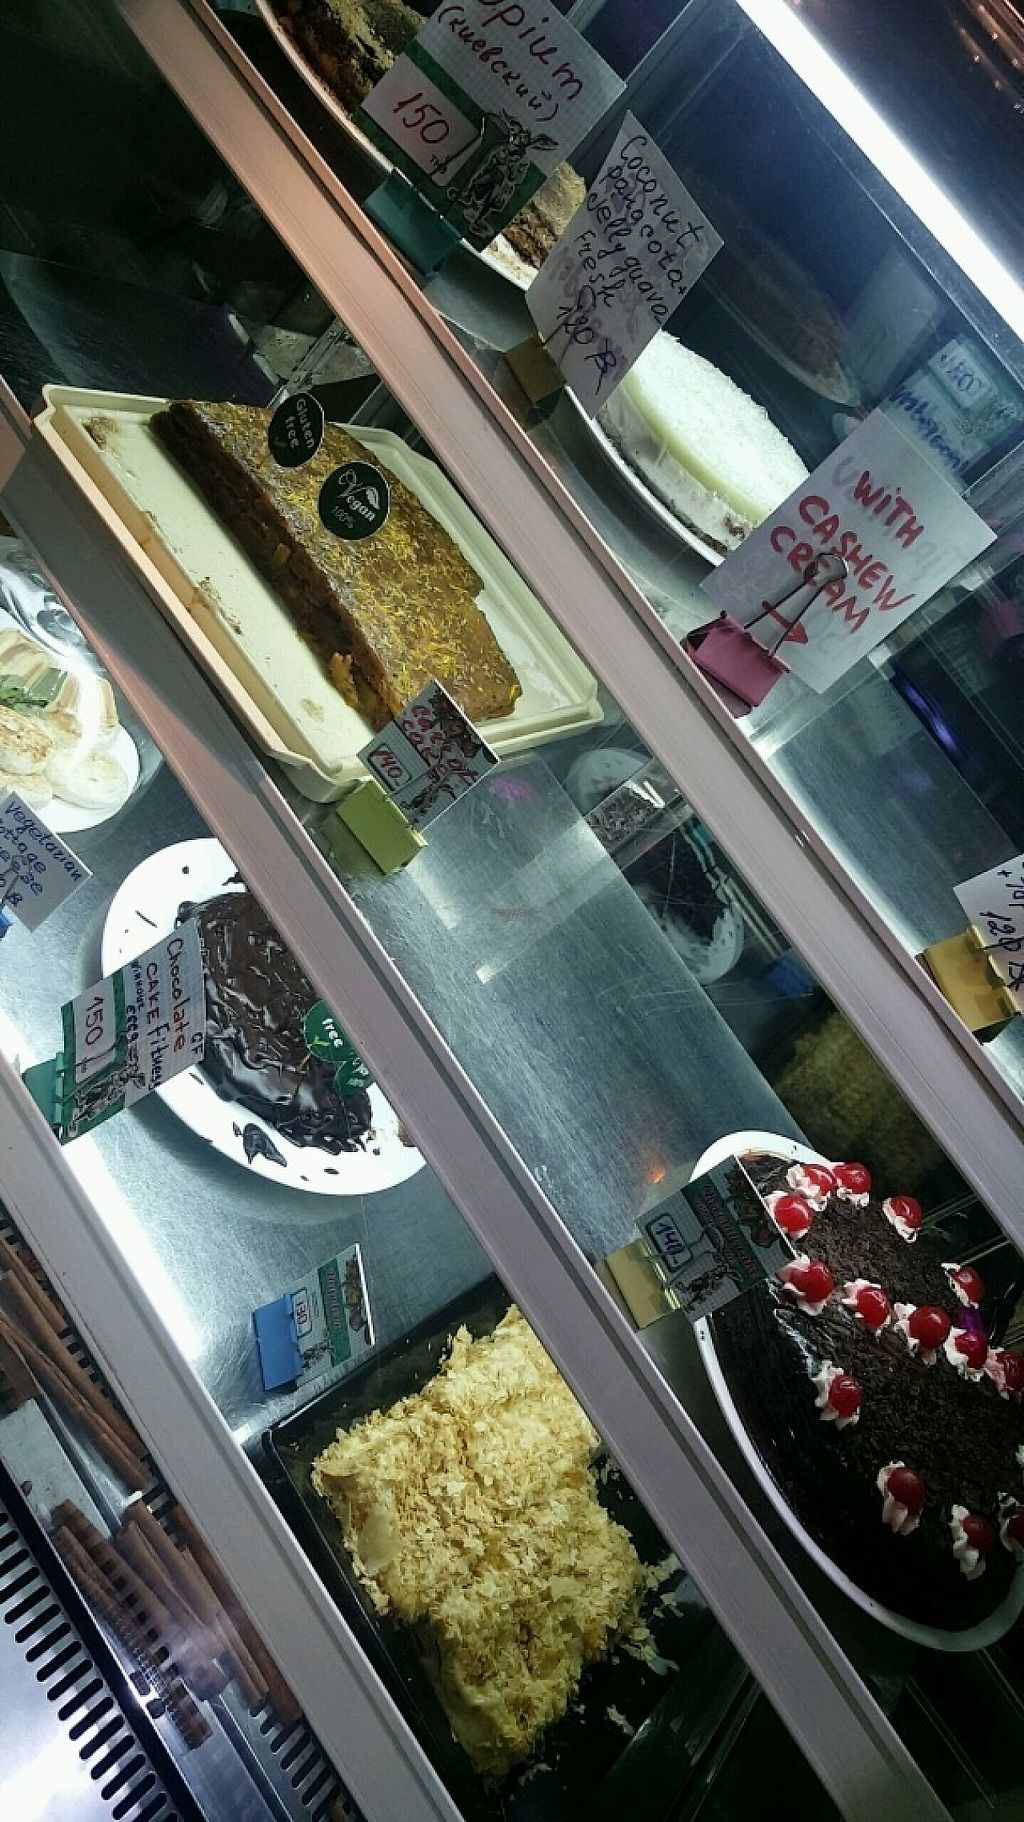 """Photo of Tidbit Bakery  by <a href=""""/members/profile/lene86"""">lene86</a> <br/>Cakes <br/> March 23, 2017  - <a href='/contact/abuse/image/89085/239655'>Report</a>"""